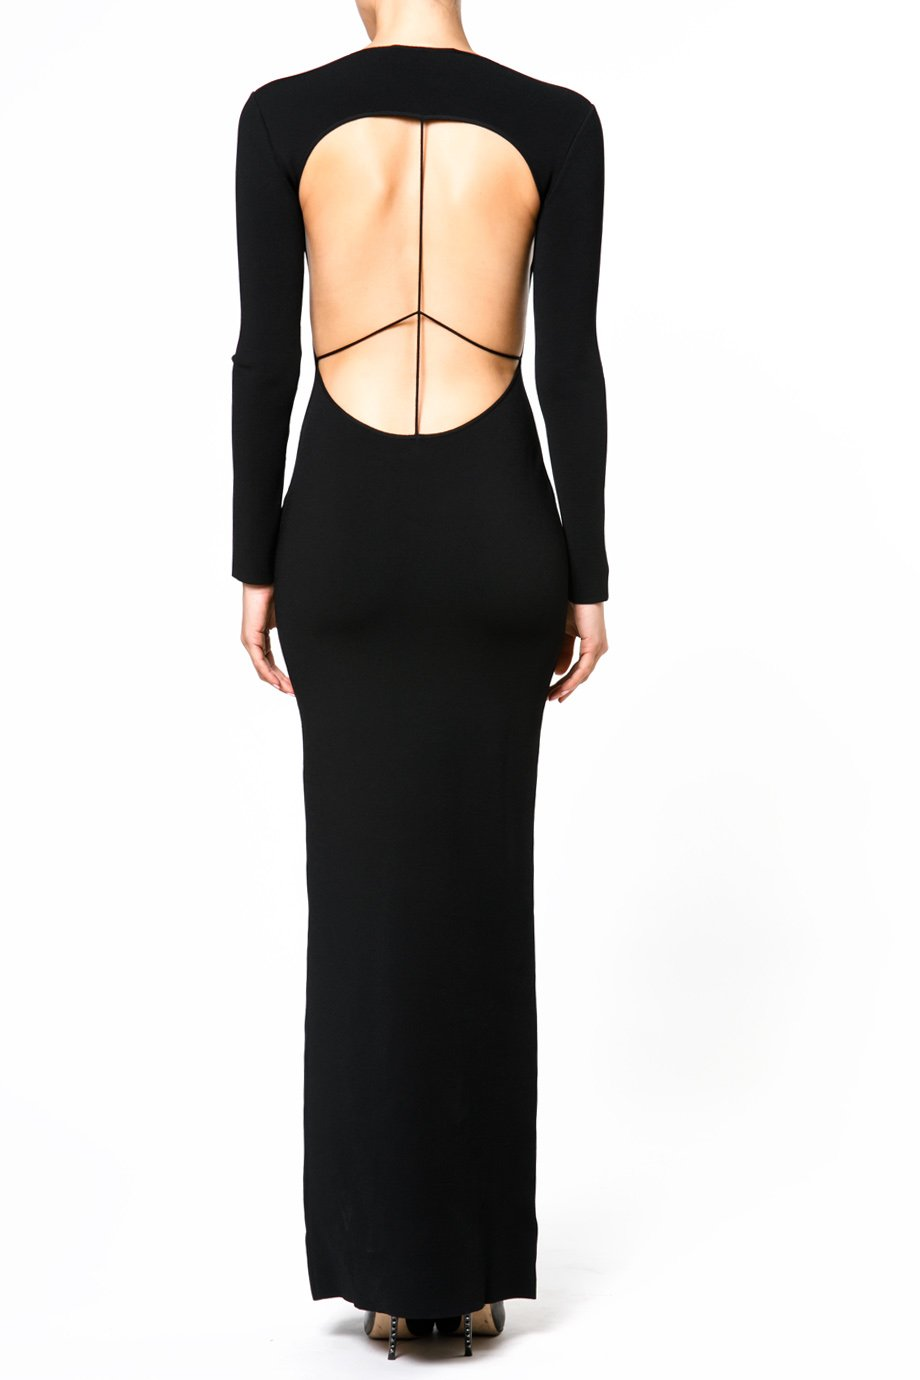 Esteban Cortazar Peace Sign Open Back Stretch Maxi Dress